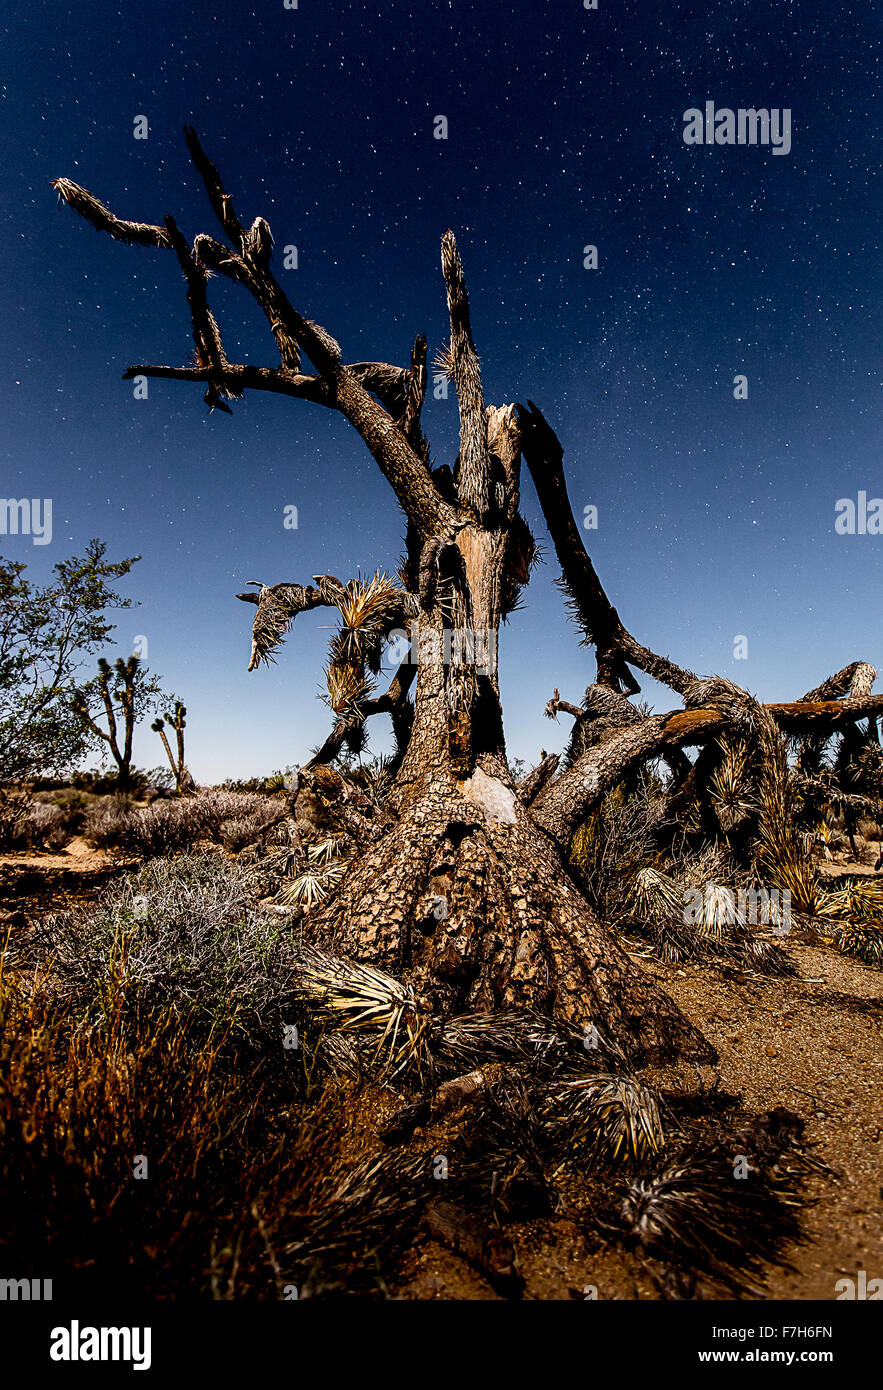 Joshua Tree leaning back in the moonlight - Stock Image